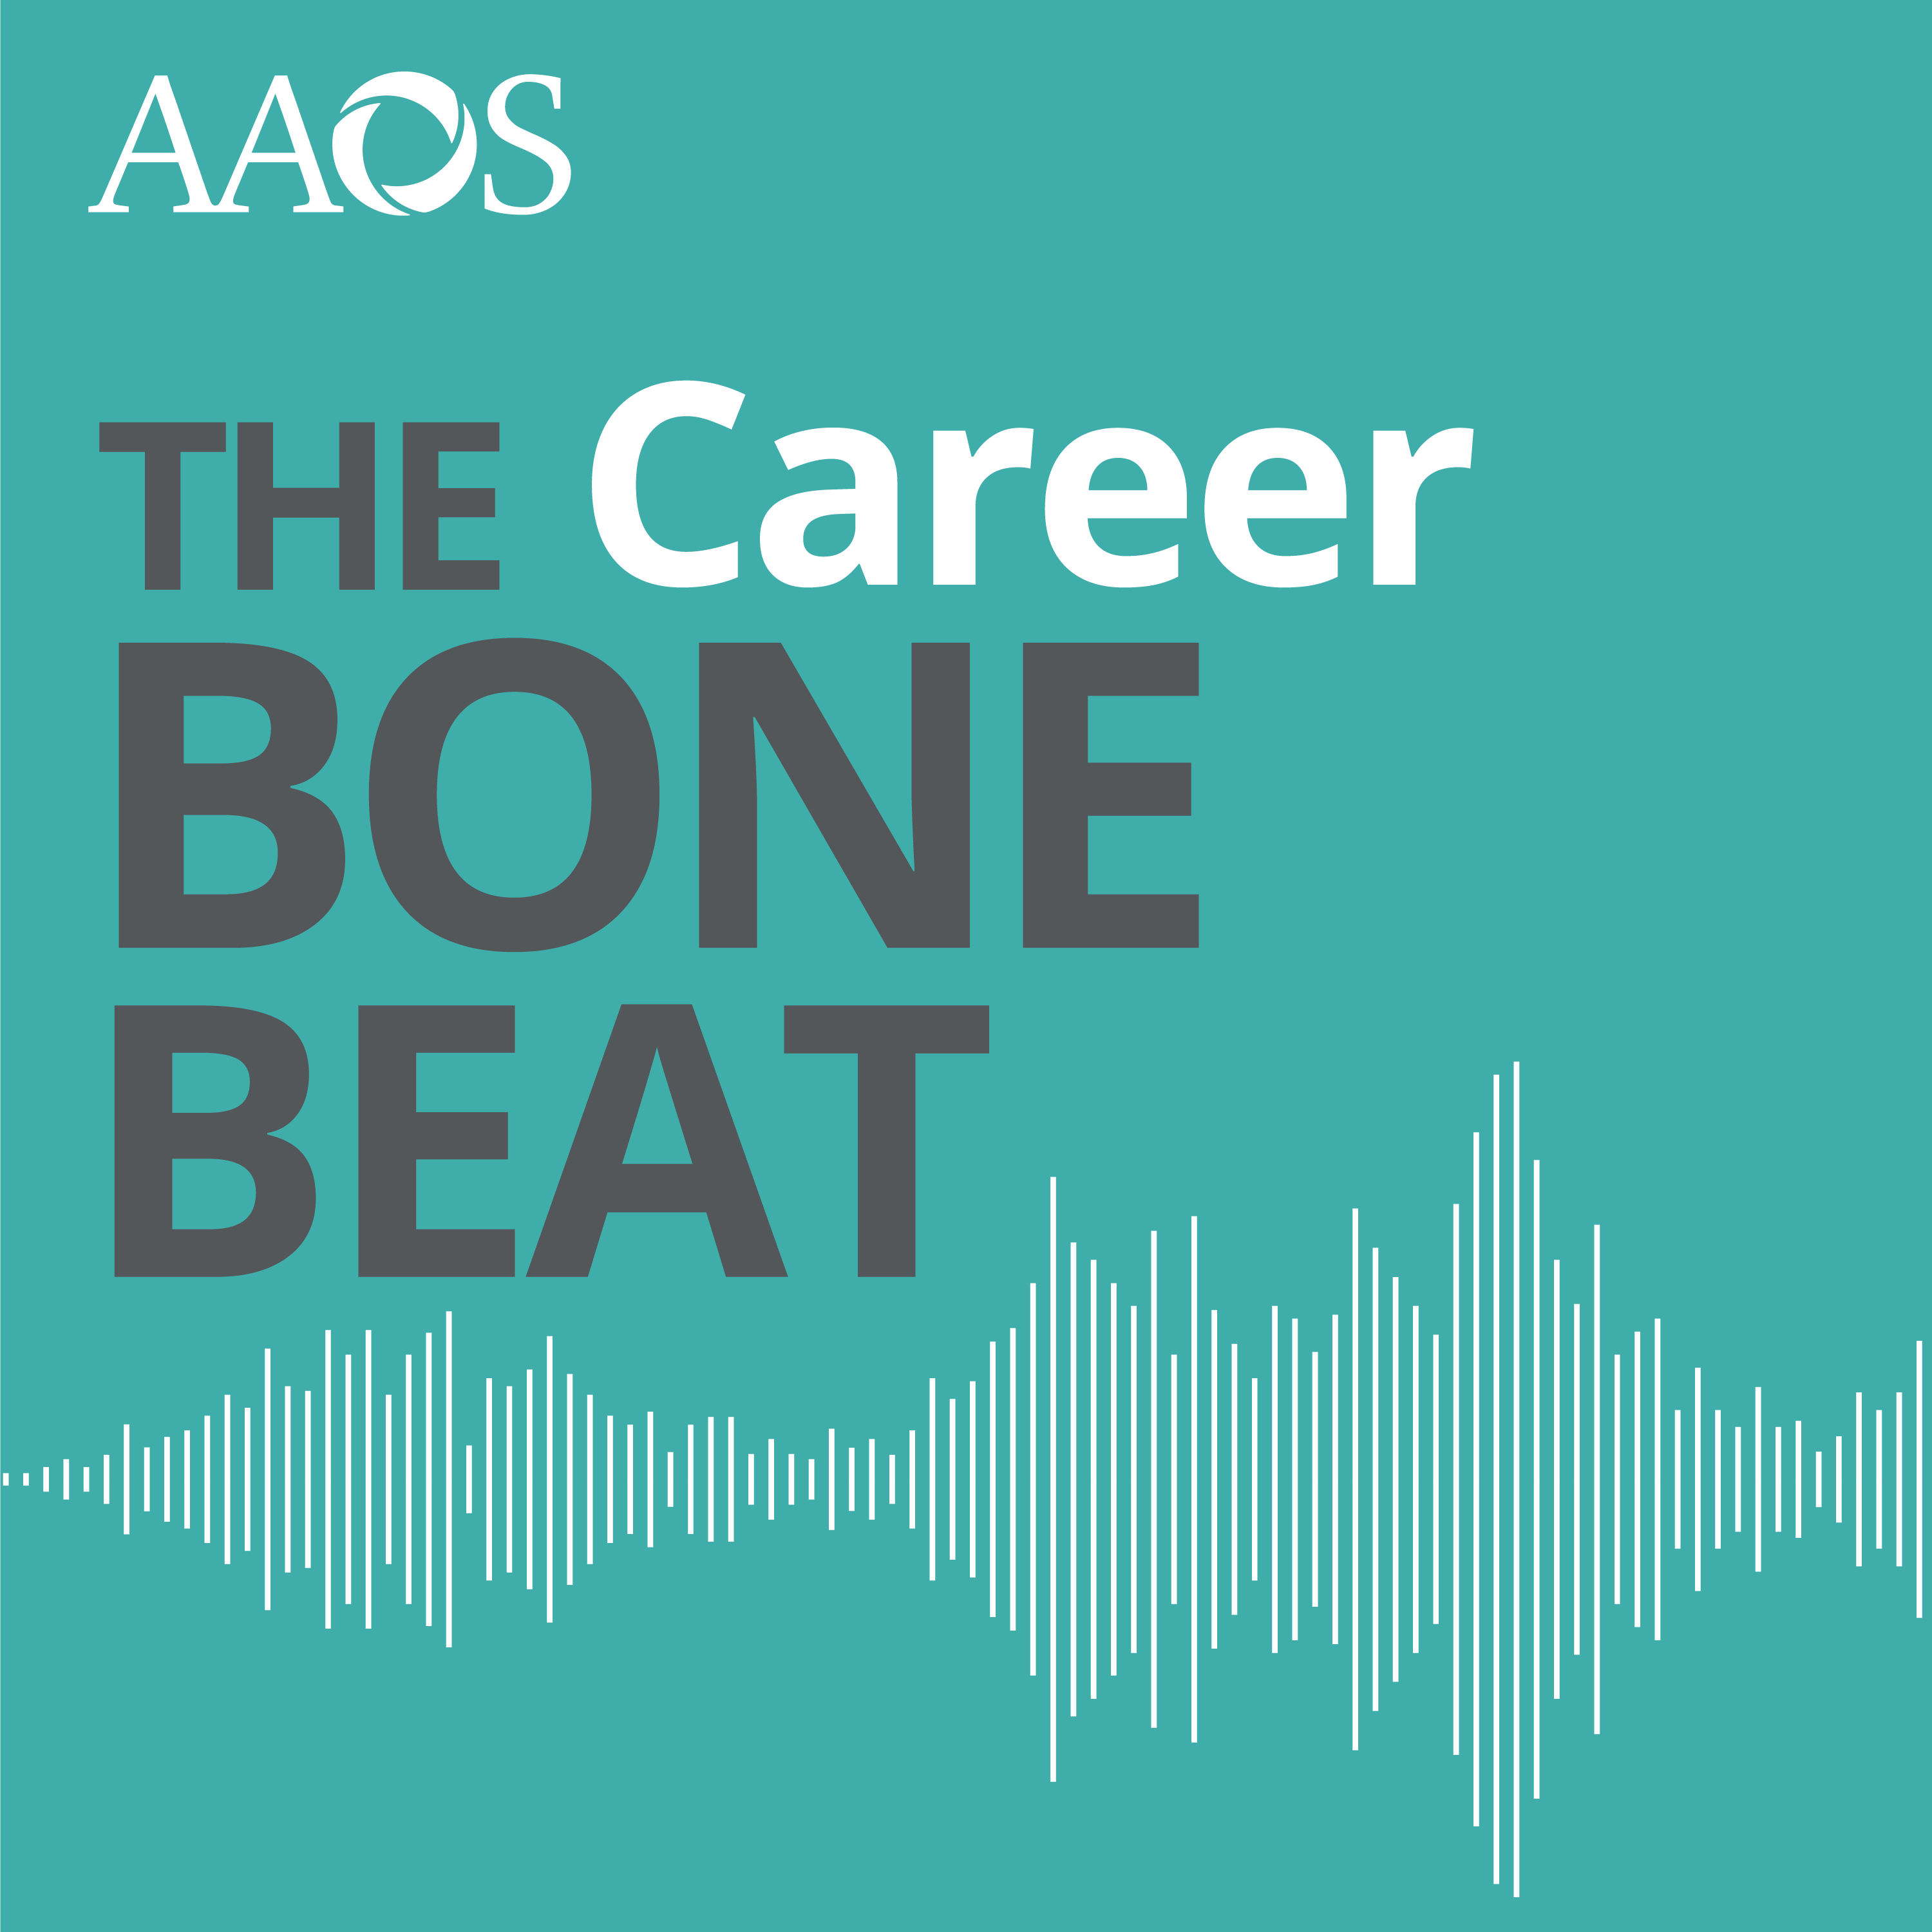 Introducing the AAOS Career Podcast